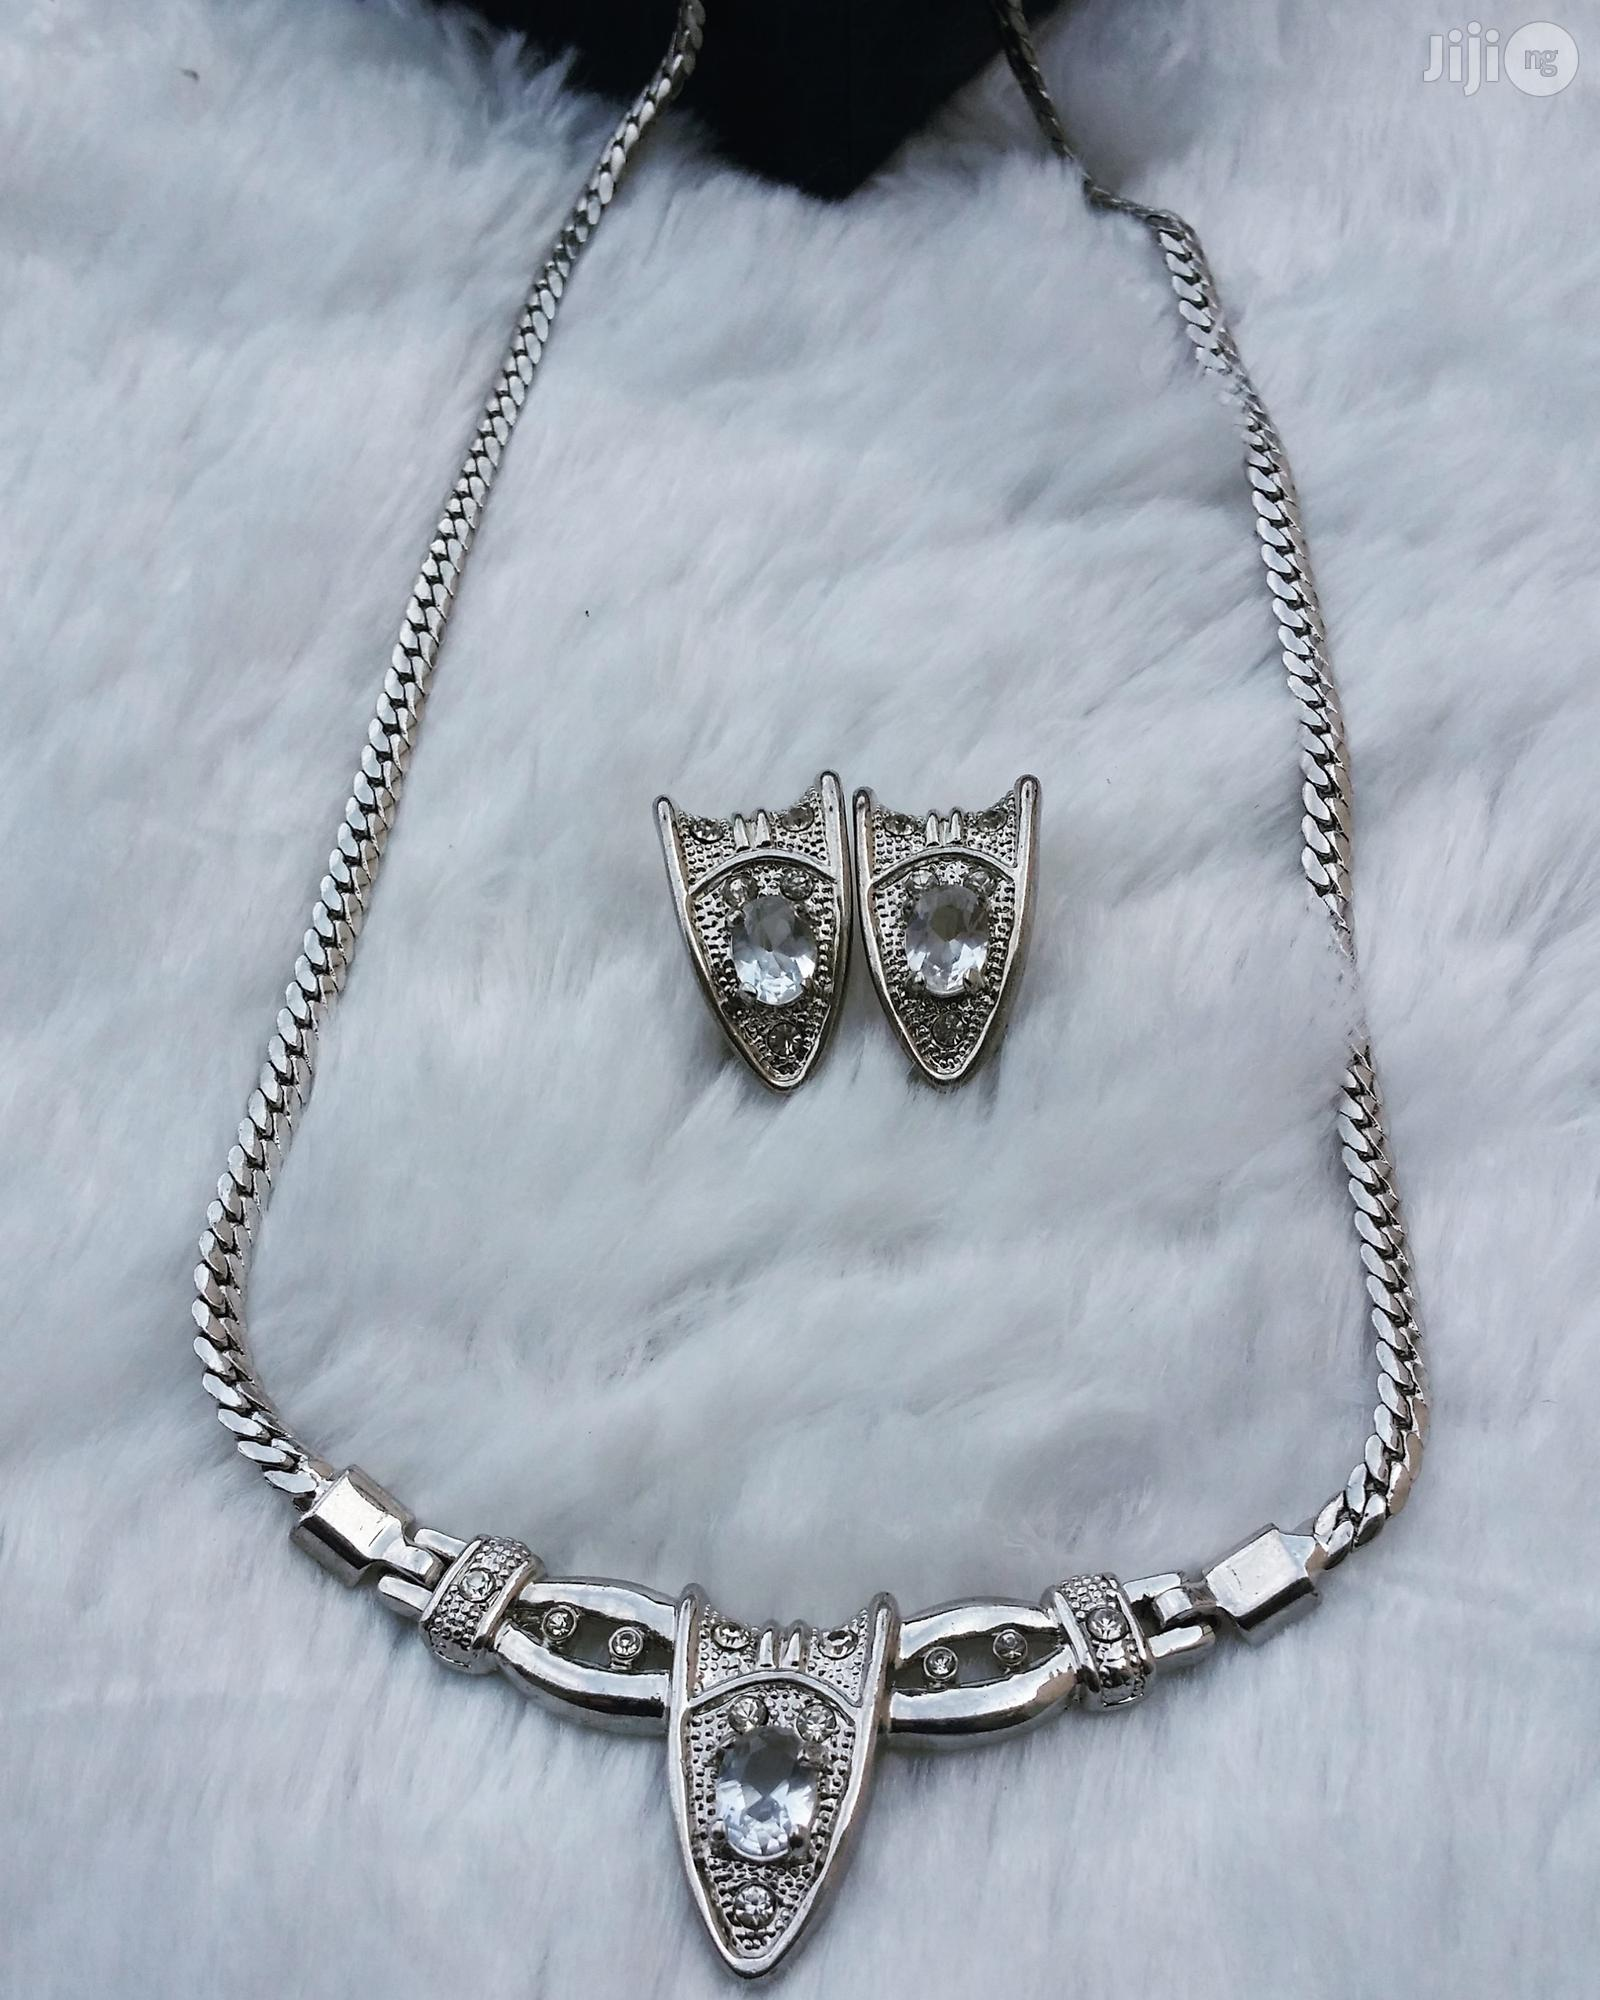 Silver Necklace | Jewelry for sale in Ajah, Lagos State, Nigeria